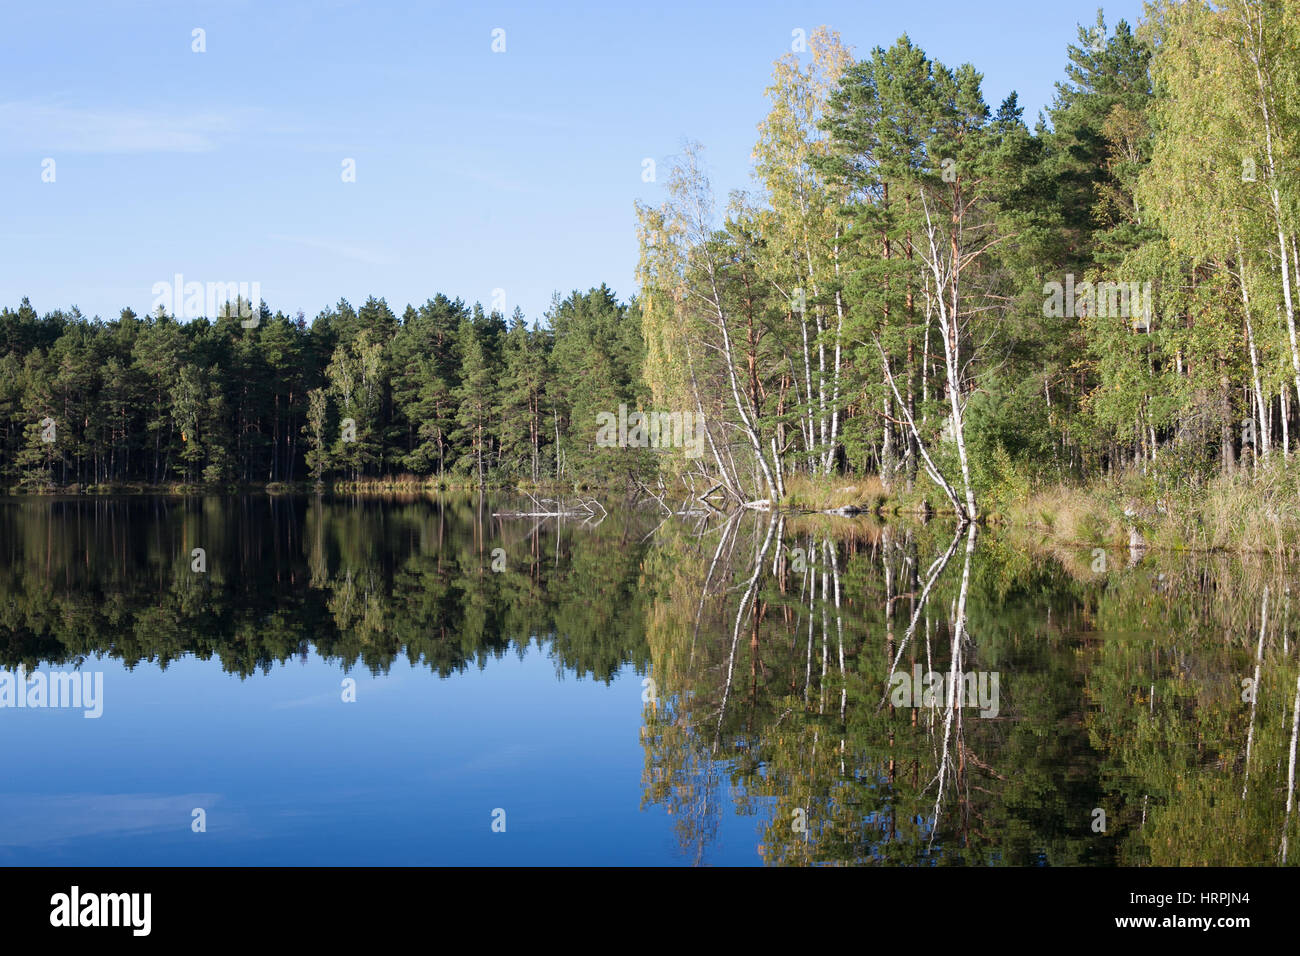 landscape with a reflection in the lake - Stock Image